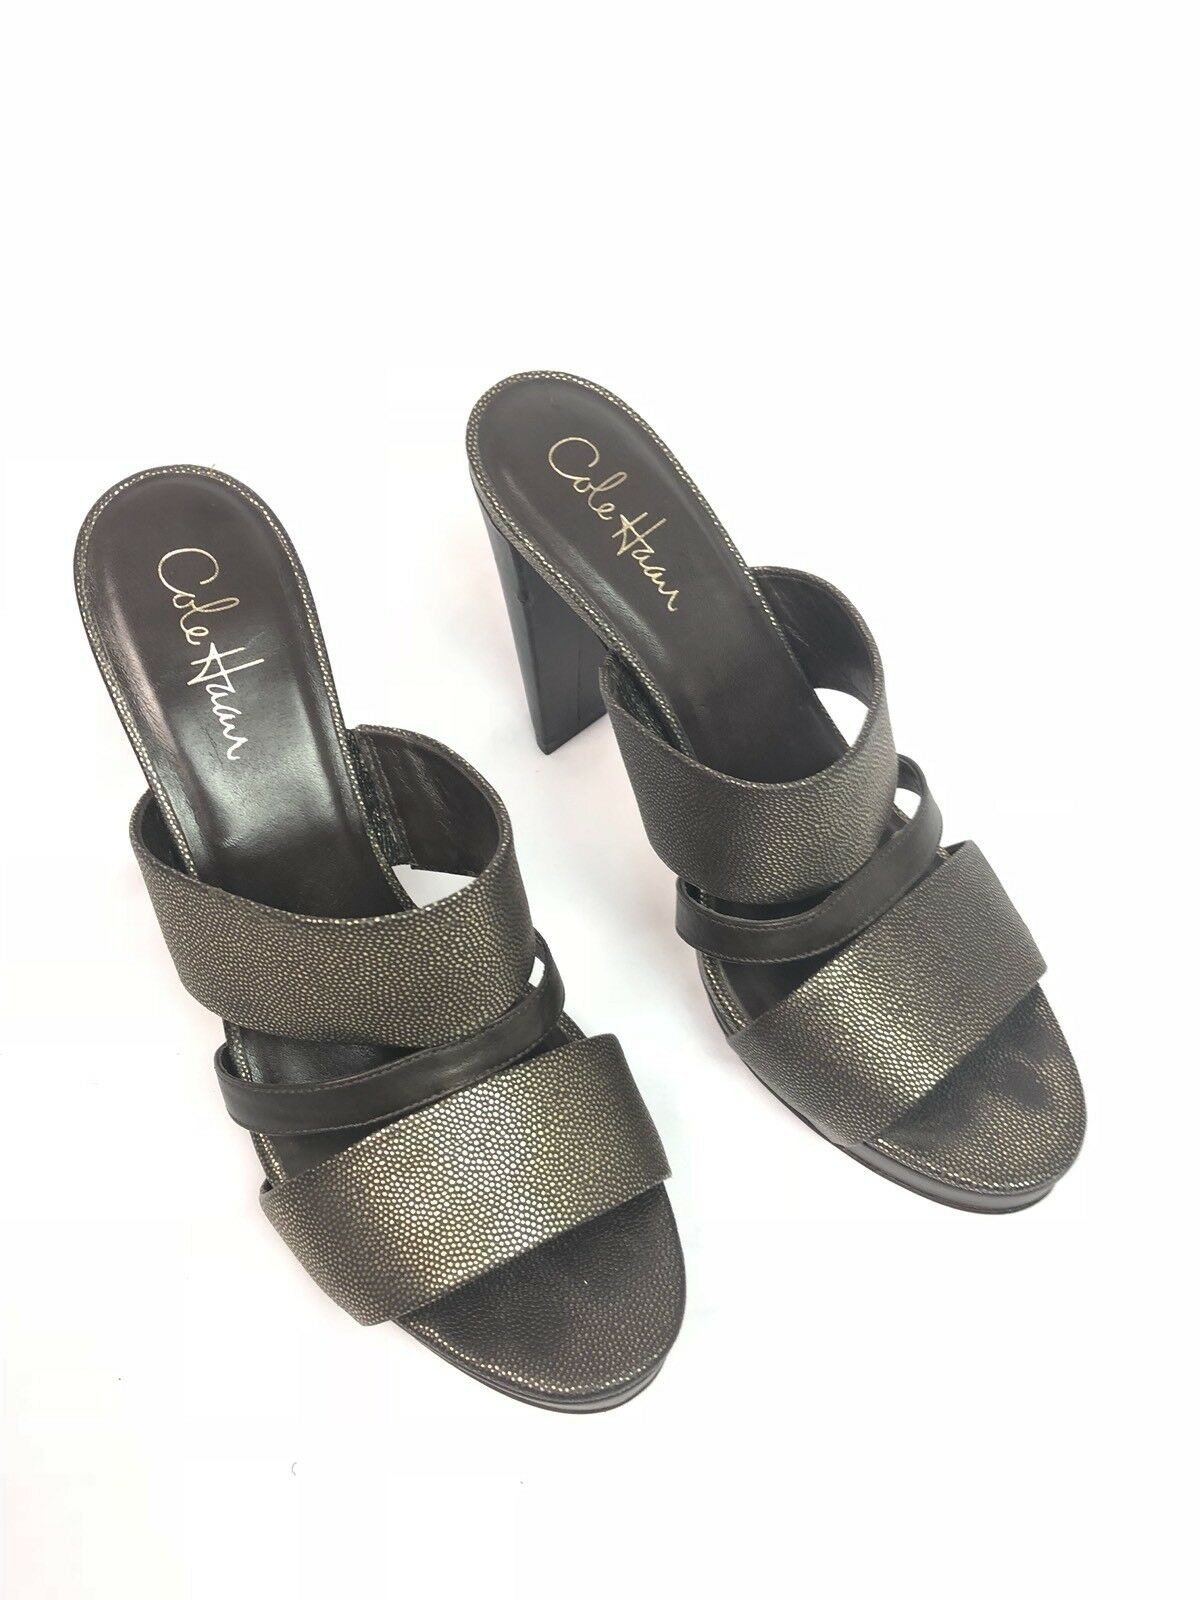 Cole Haan NikeAir Heels Leather Größe damen 9 Open Toe braun Strappy Pumps